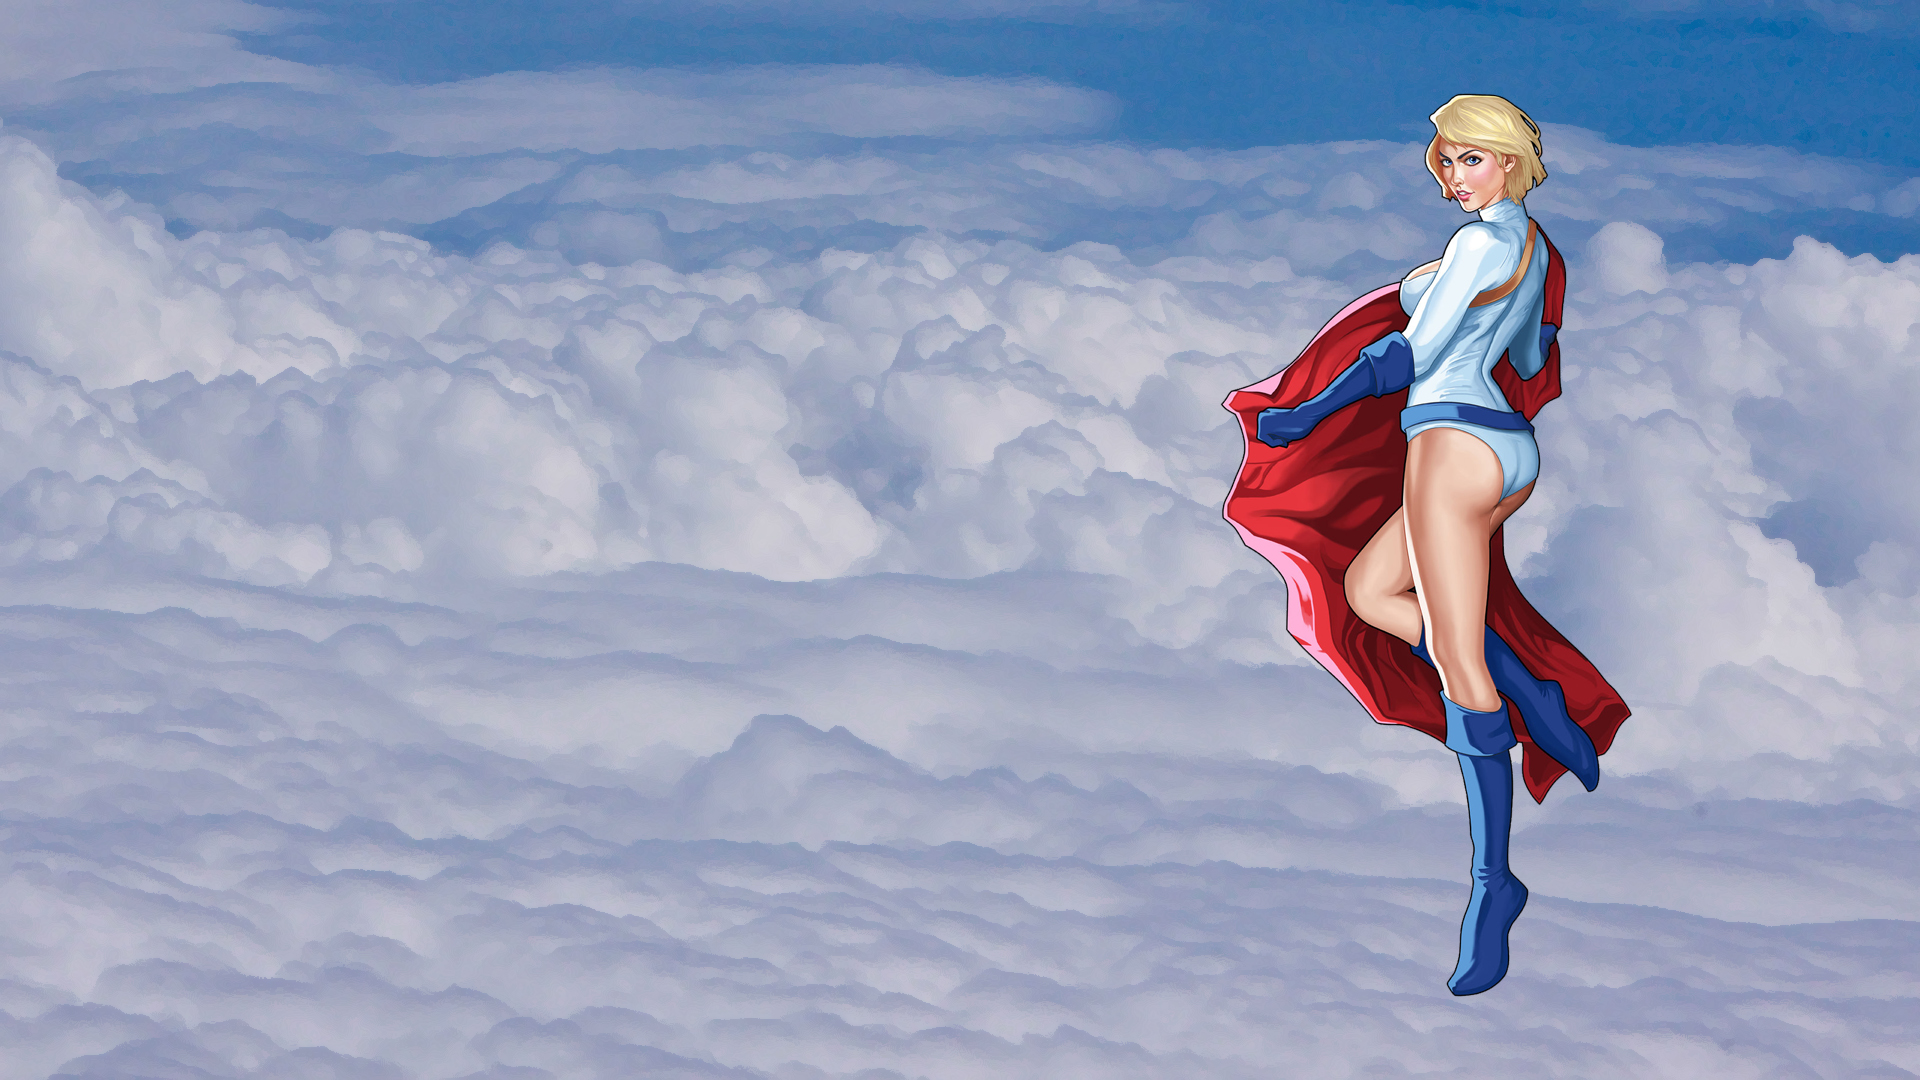 powergirl full hd wallpaper and background image | 1920x1080 | id:438587